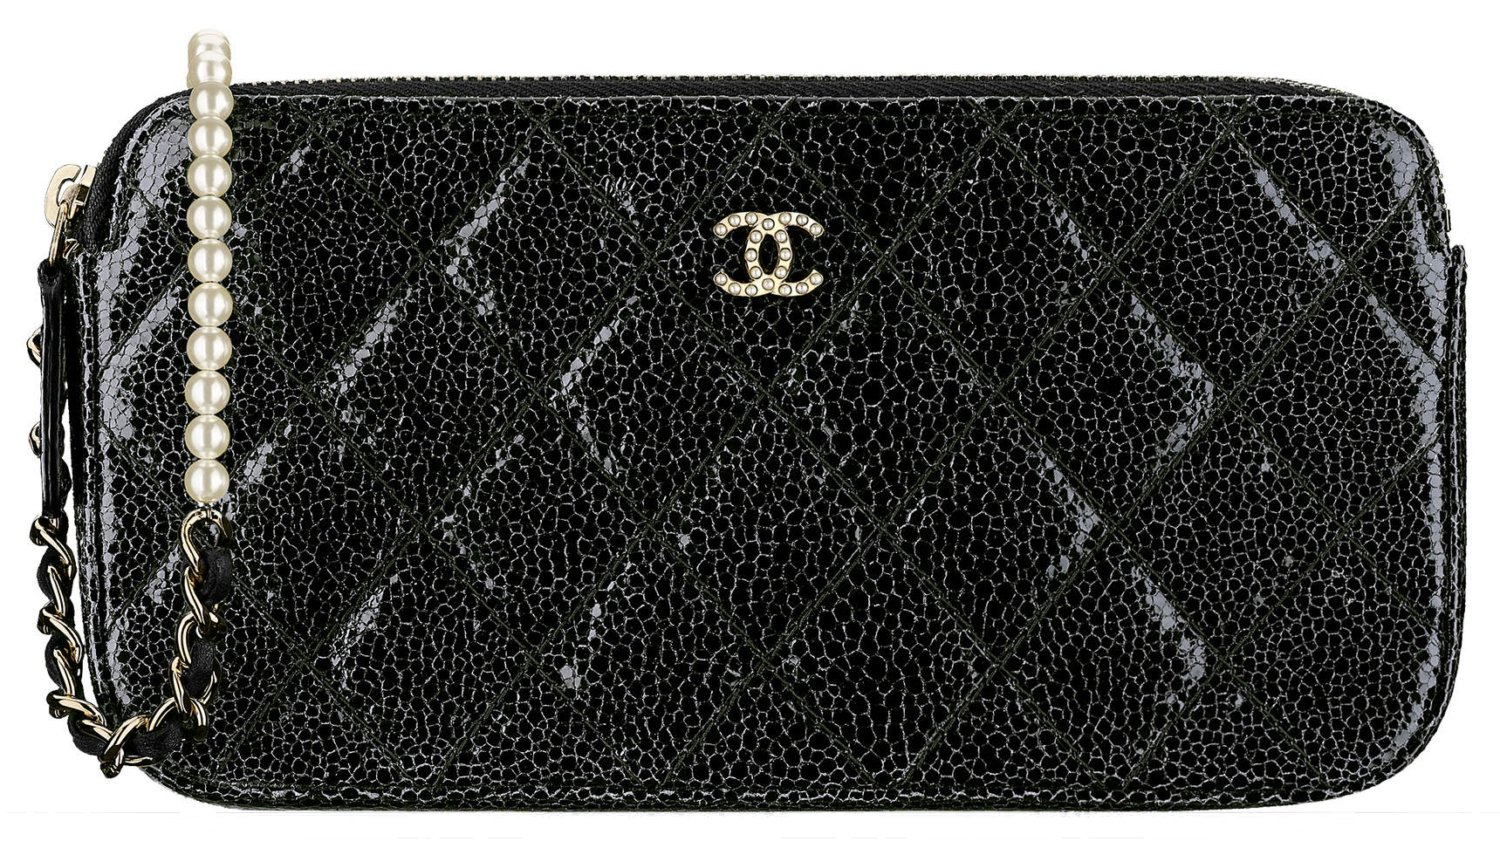 Chanel-Pearl-Clutch-With-Chain-Crackled-Patent